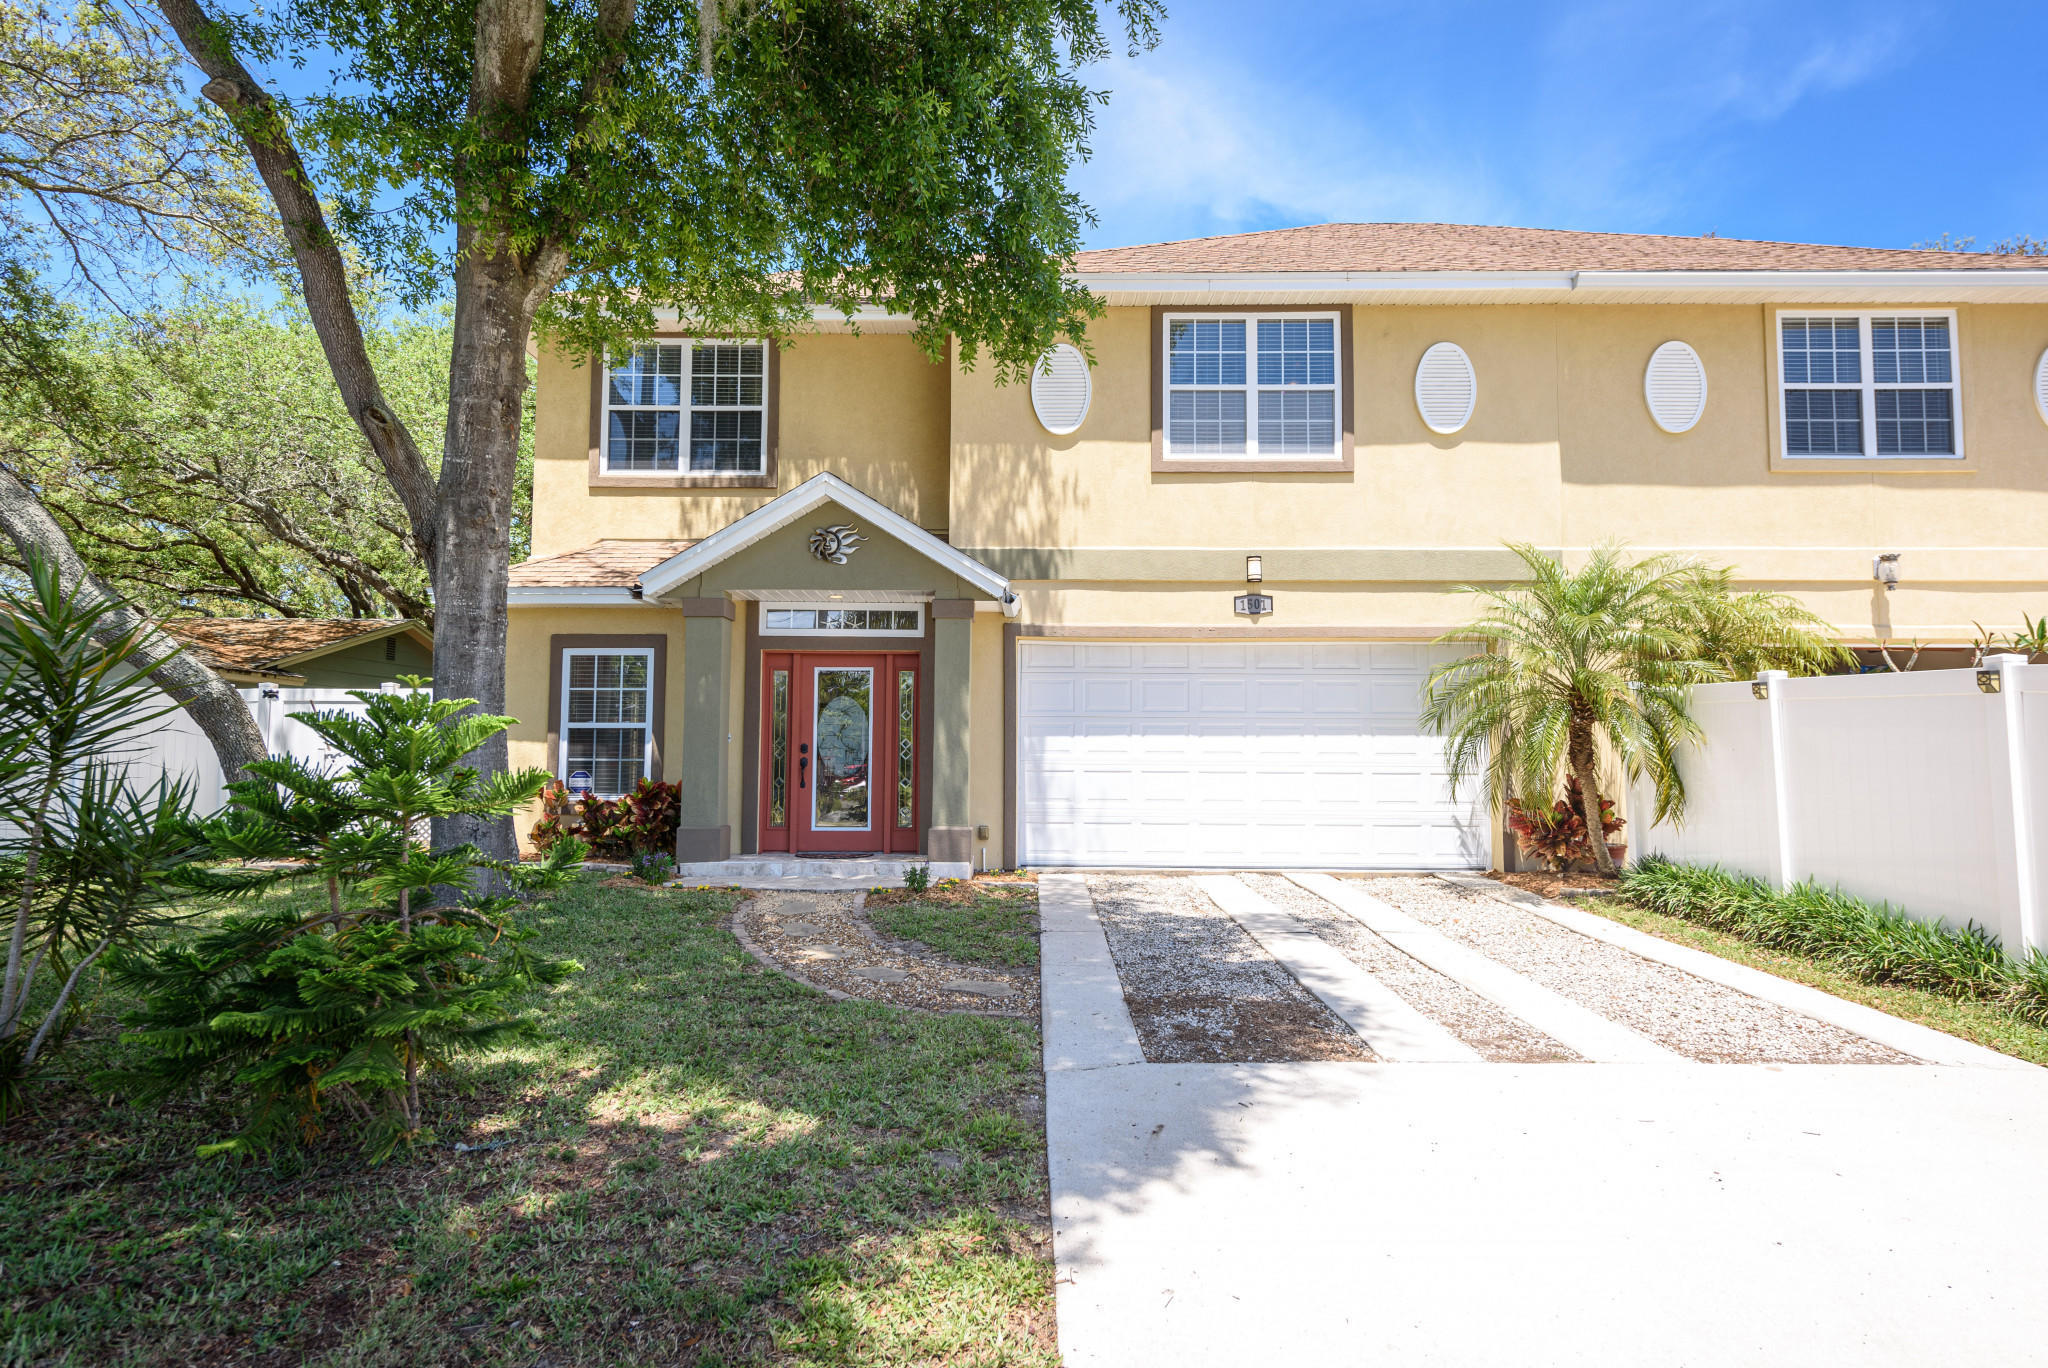 1501 SEABREEZE AVE, JACKSONVILLE BEACH, Florida 32250, 4 Bedrooms Bedrooms, ,3 BathroomsBathrooms,Residential,For Sale,1501 SEABREEZE AVE,1107738